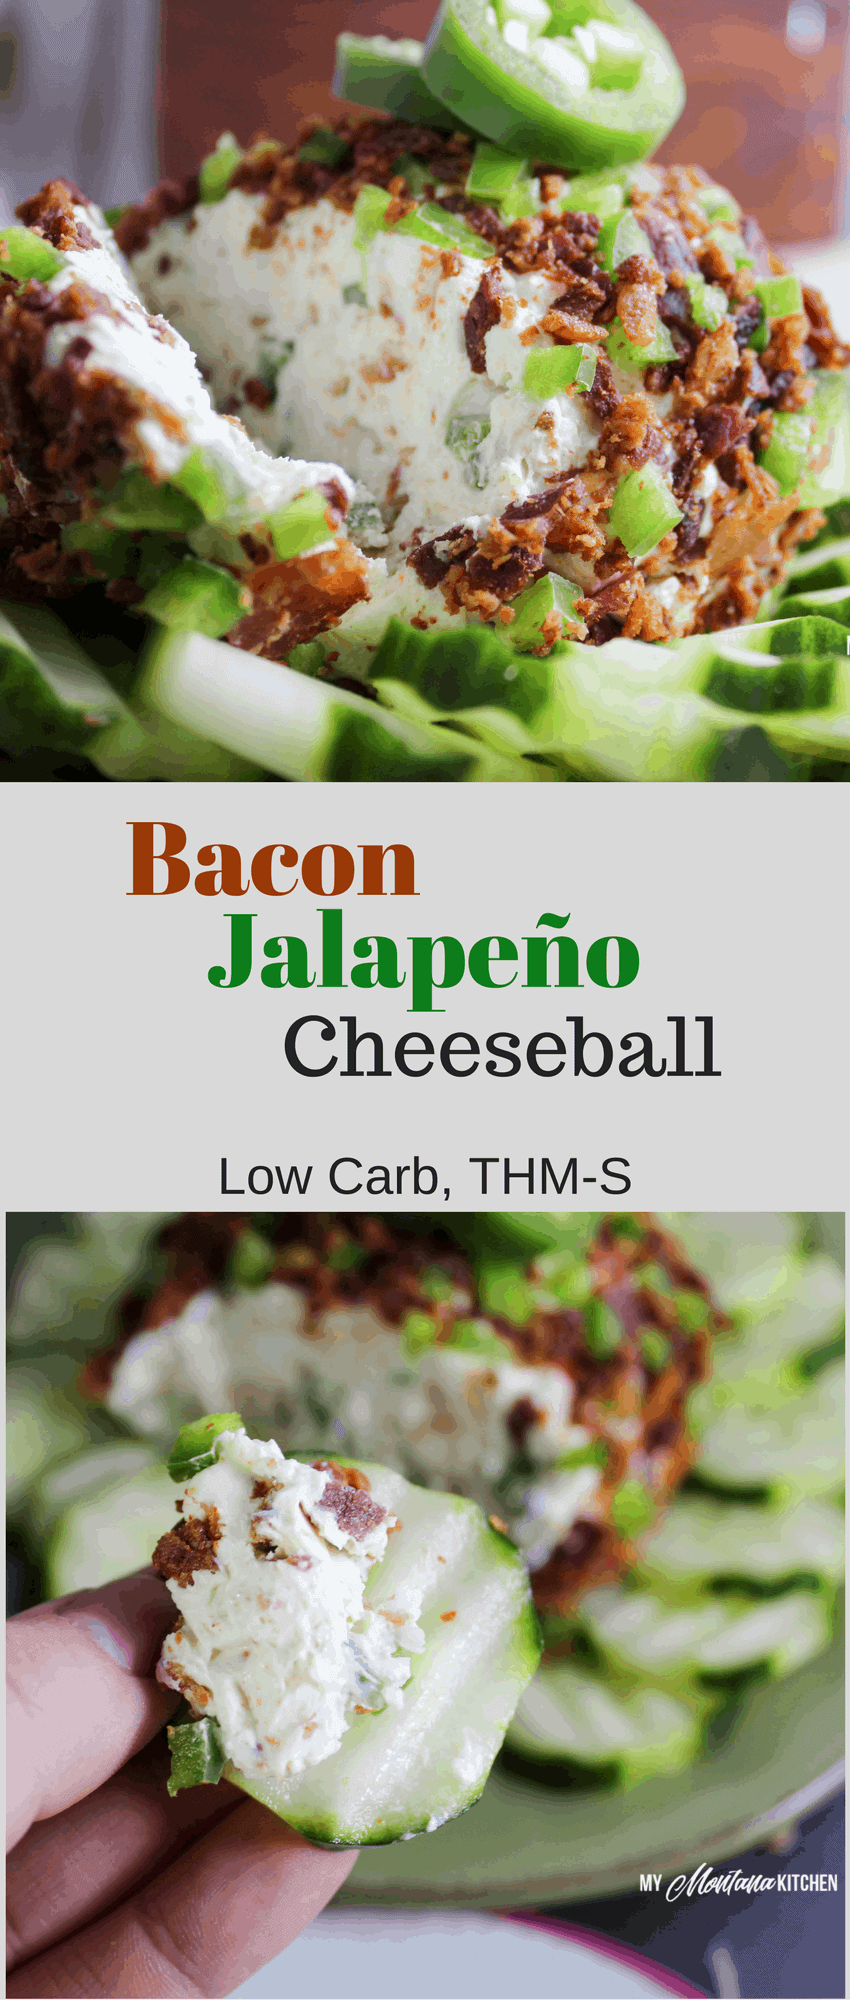 Easy Bacon Jalapeño Cheese Ball (Low Carb, Keto, THM-S) #trimhealthymama #thm #thm-s #cheeseball #bacon #jalapeno #appetizer #creamcheese